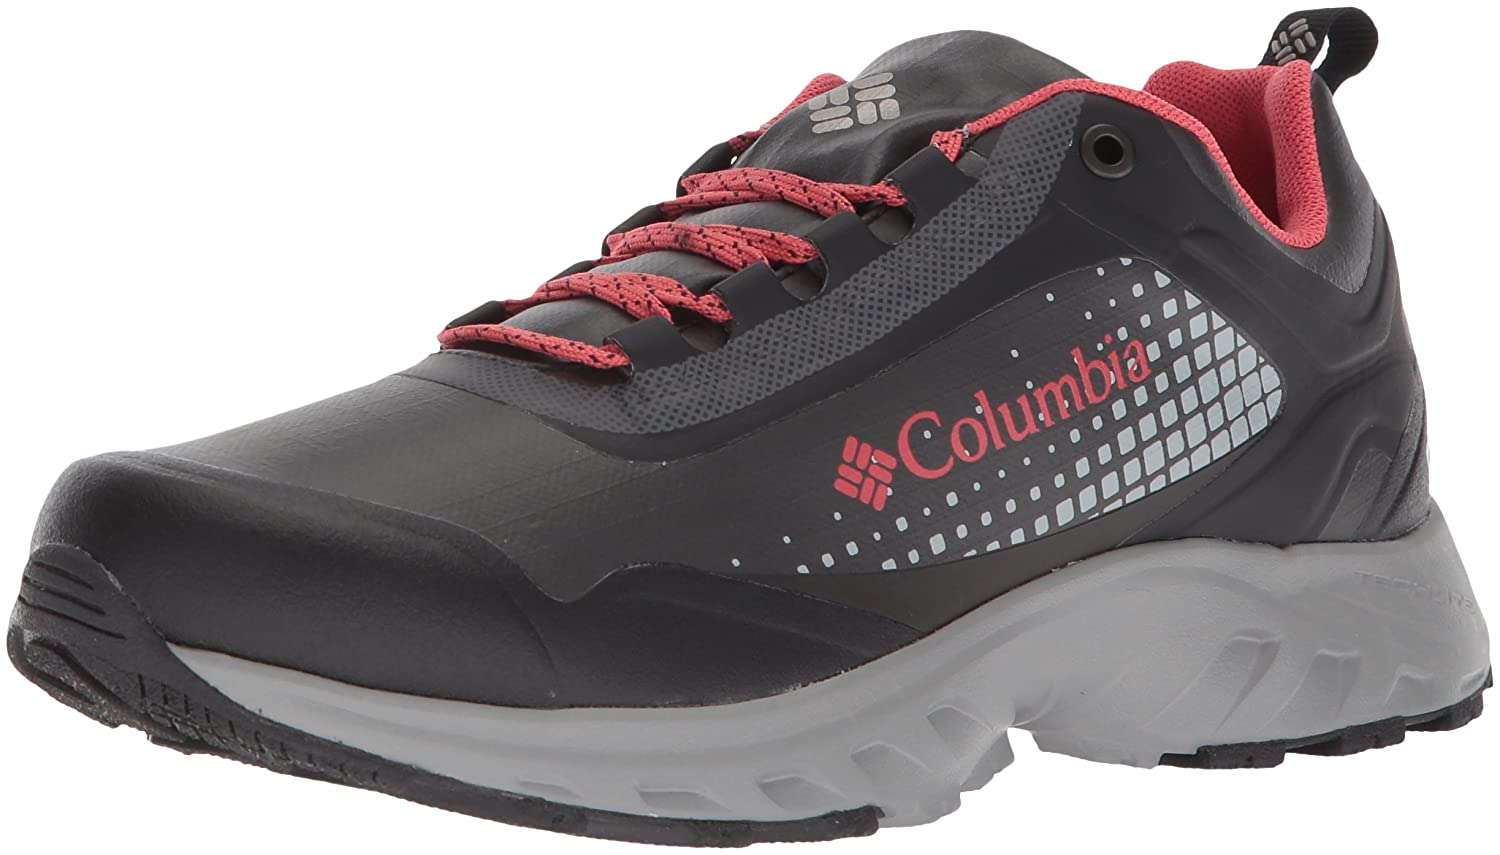 Columbia Women's Irrigon Trail Outdry Xtrm Hiking Shoe B0787HV3CQ 5.5 B(M) US|Black, Sunset Red